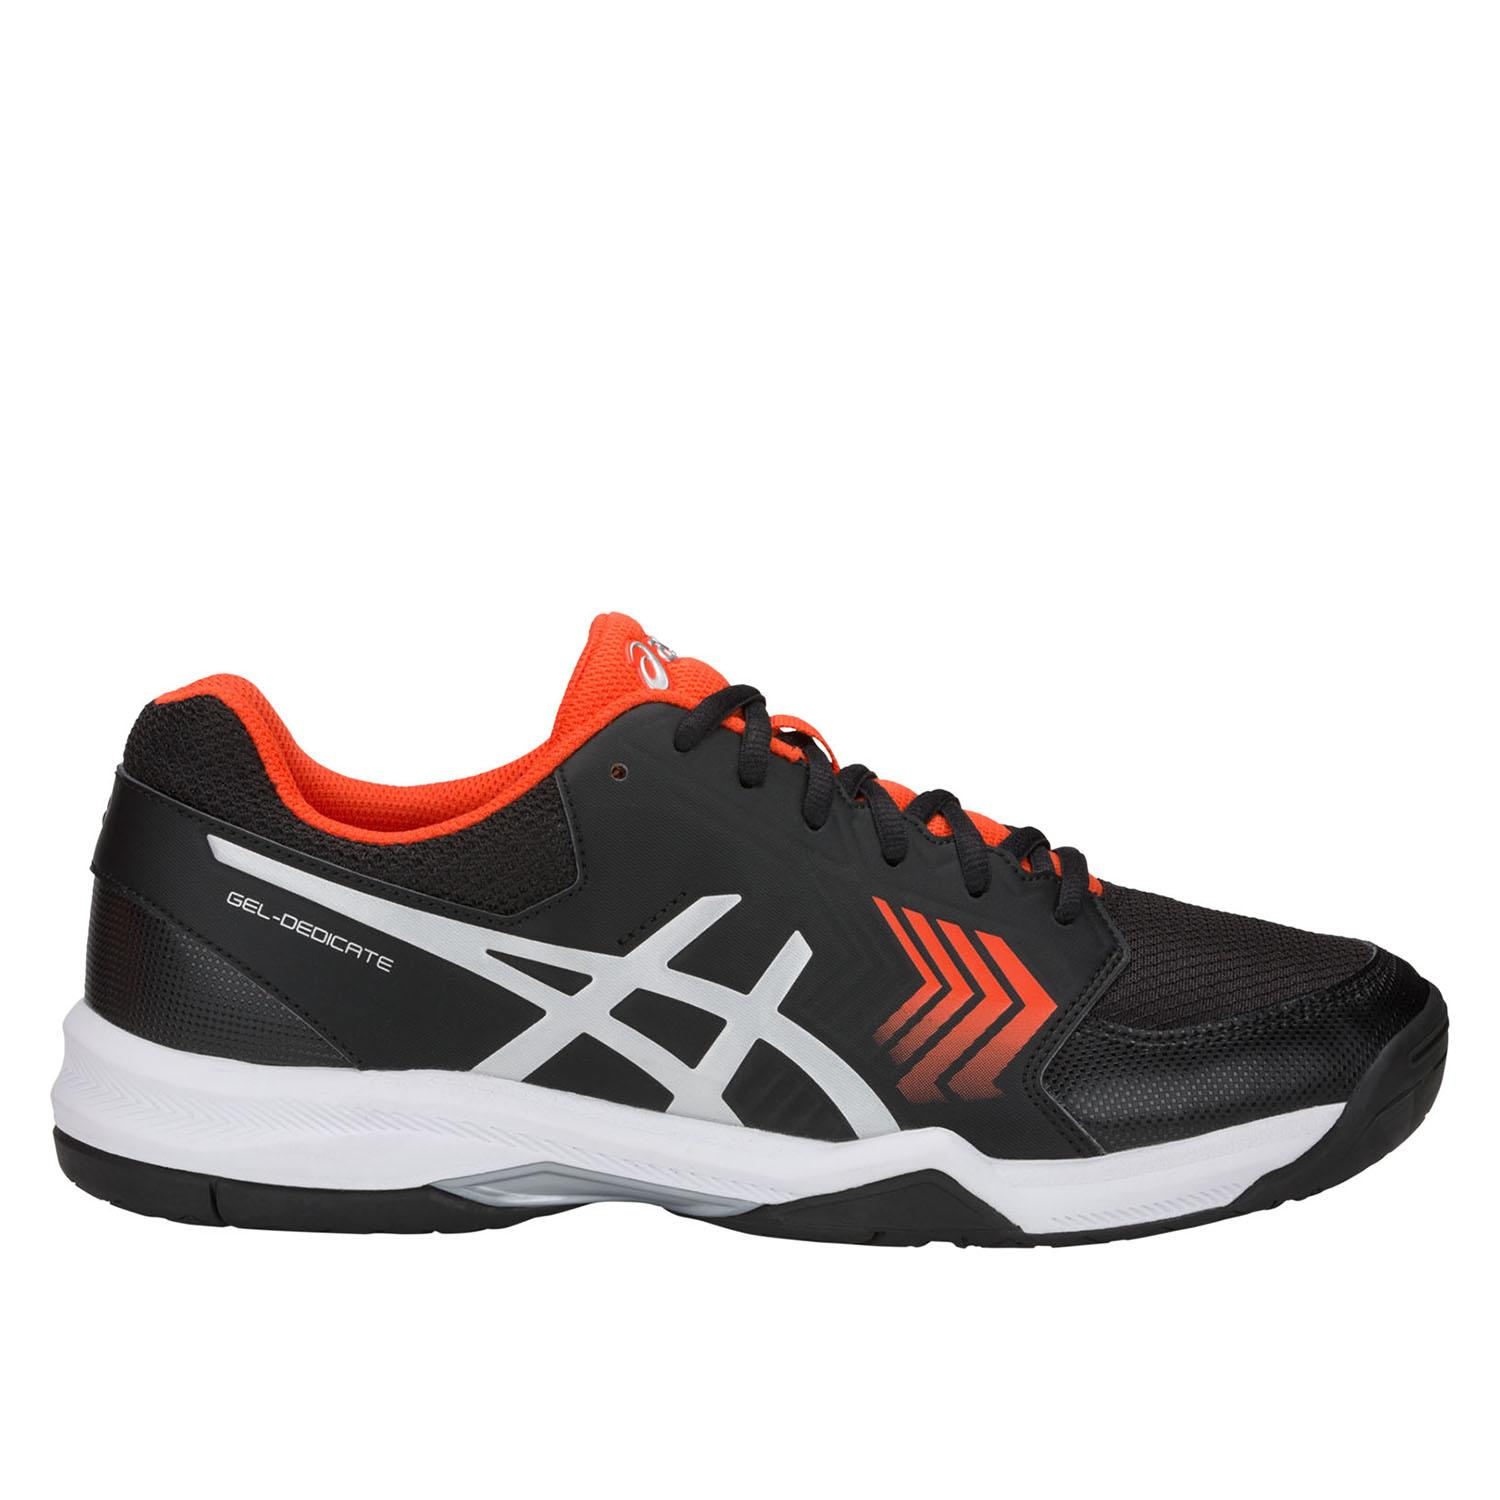 the latest fea48 01976 ASICS GEL-Dedicate 5 (Hardcourt Outsole) Men s Tennis Shoe